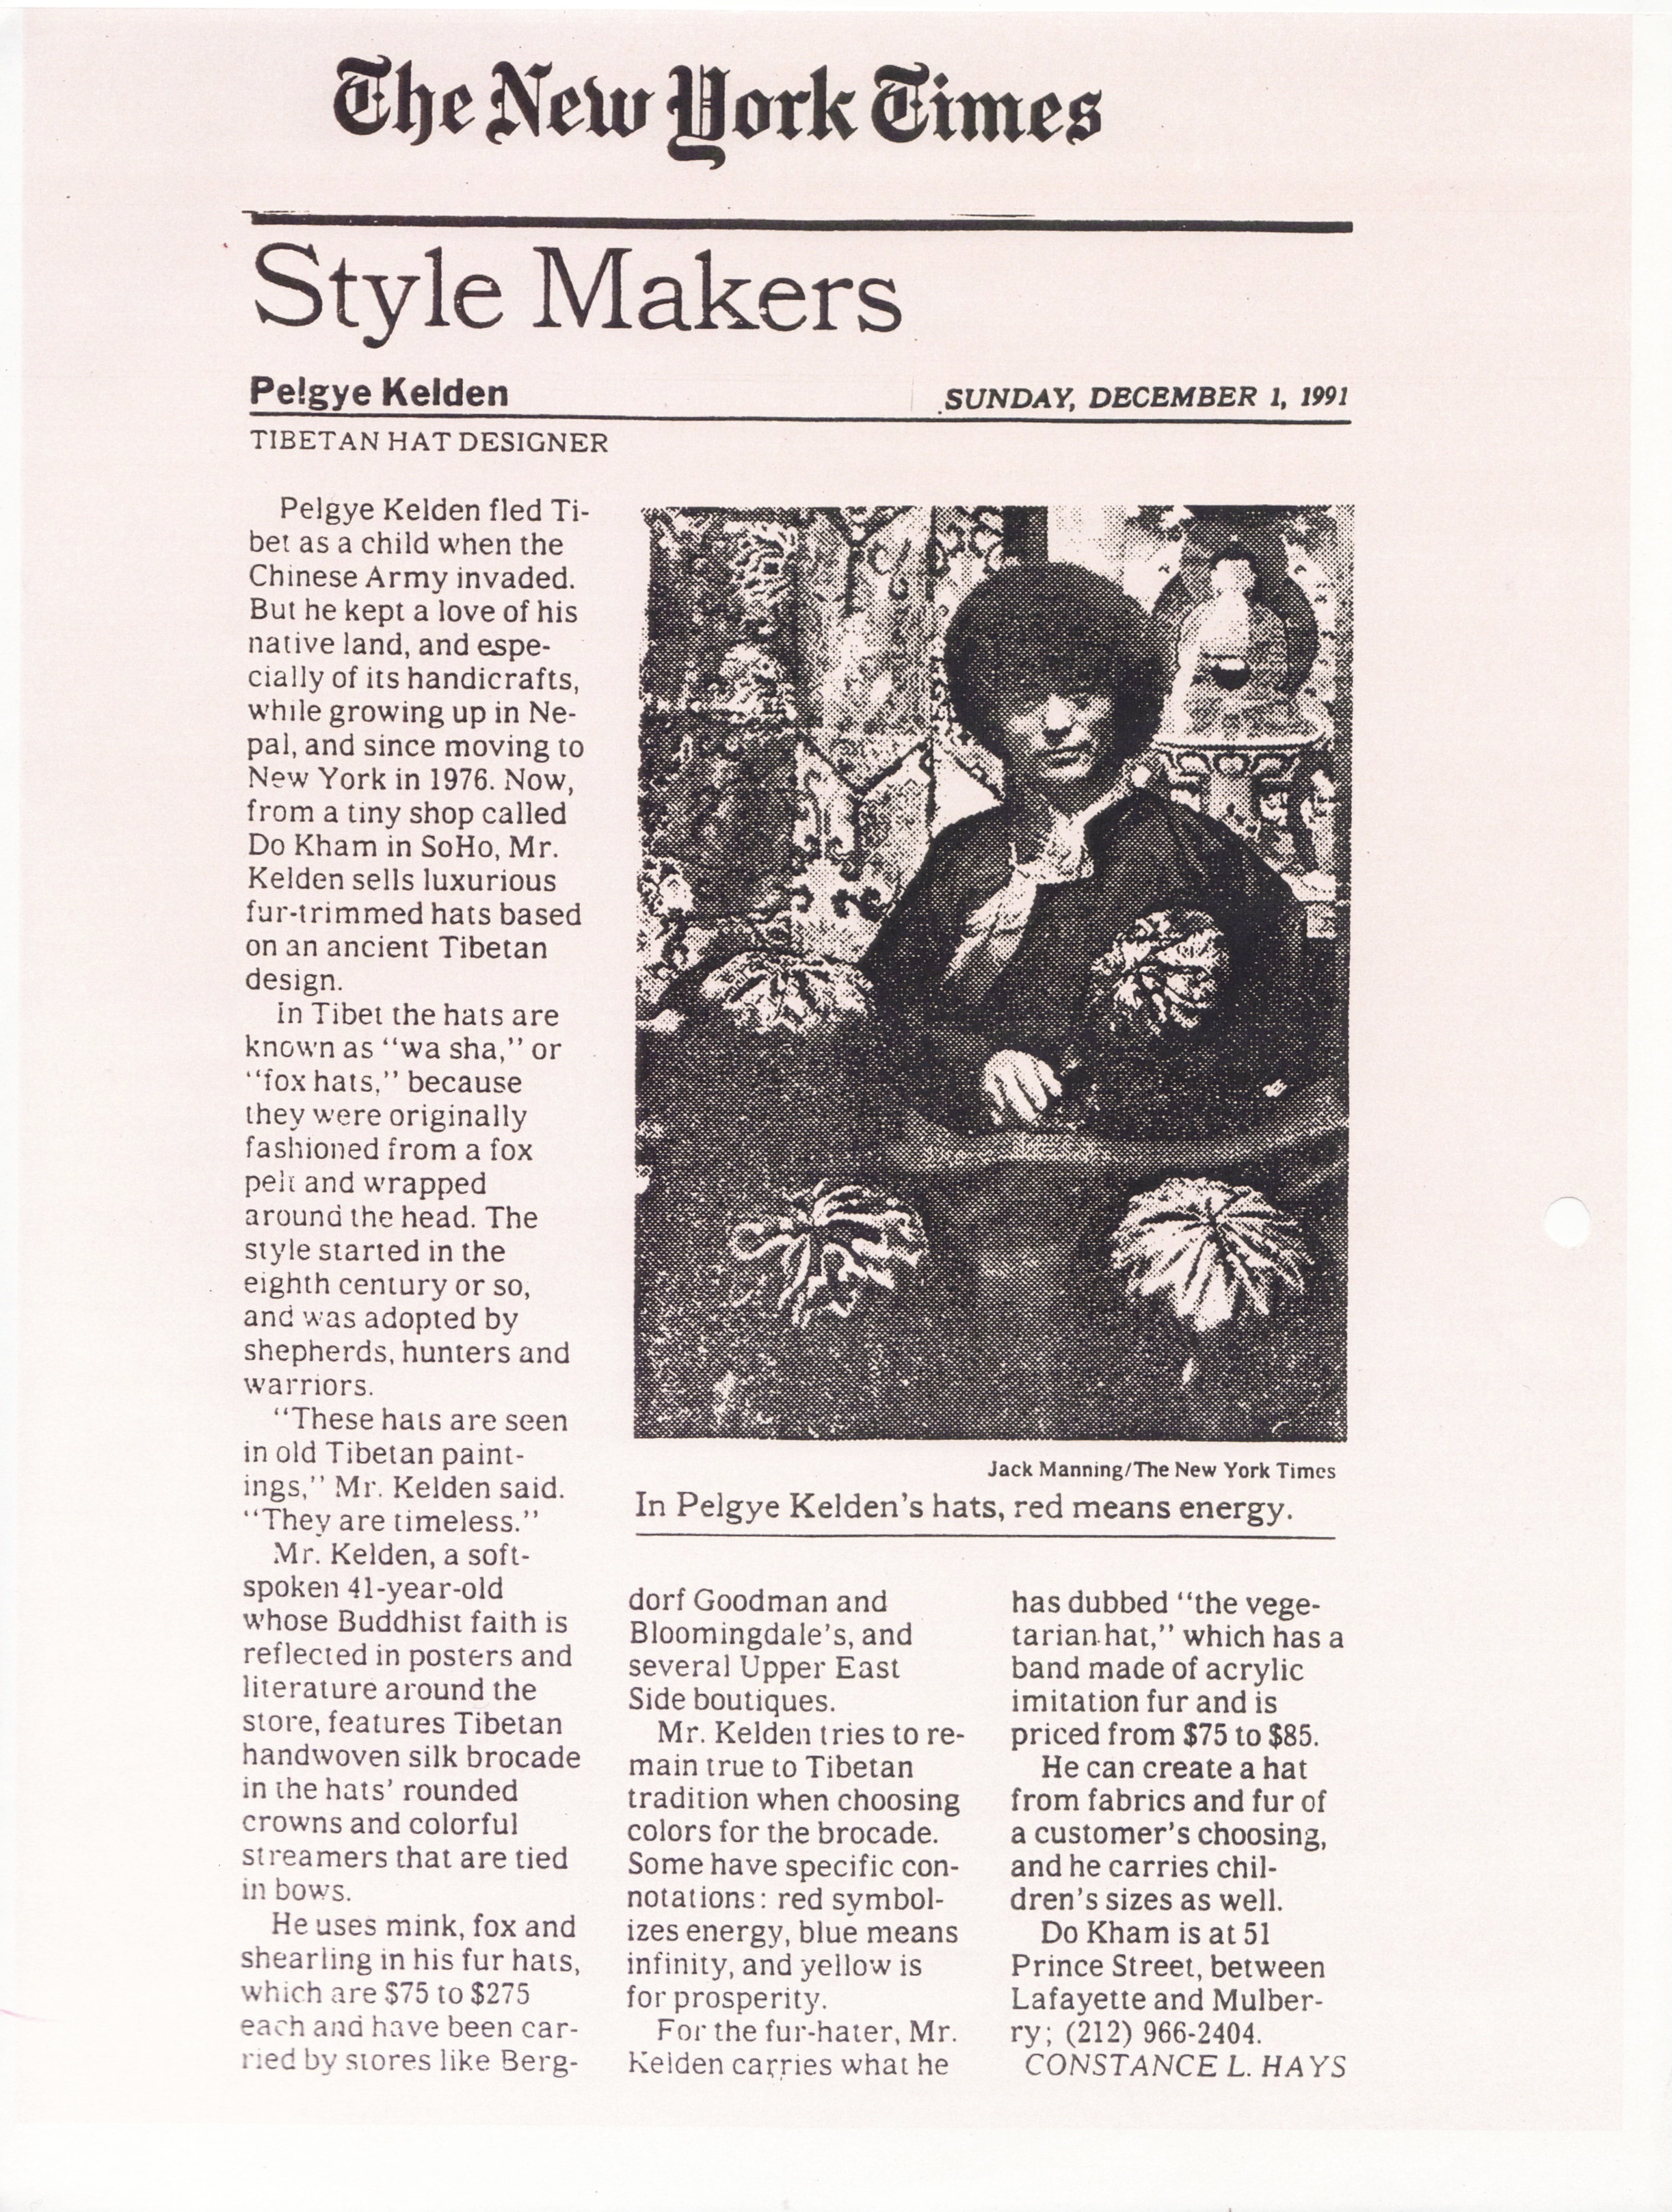 New York Times - December, 1991, Phelgye was featured as a New York Times Style Maker, known for adapting styles of traditional Tibetan clothing to fit the modern world